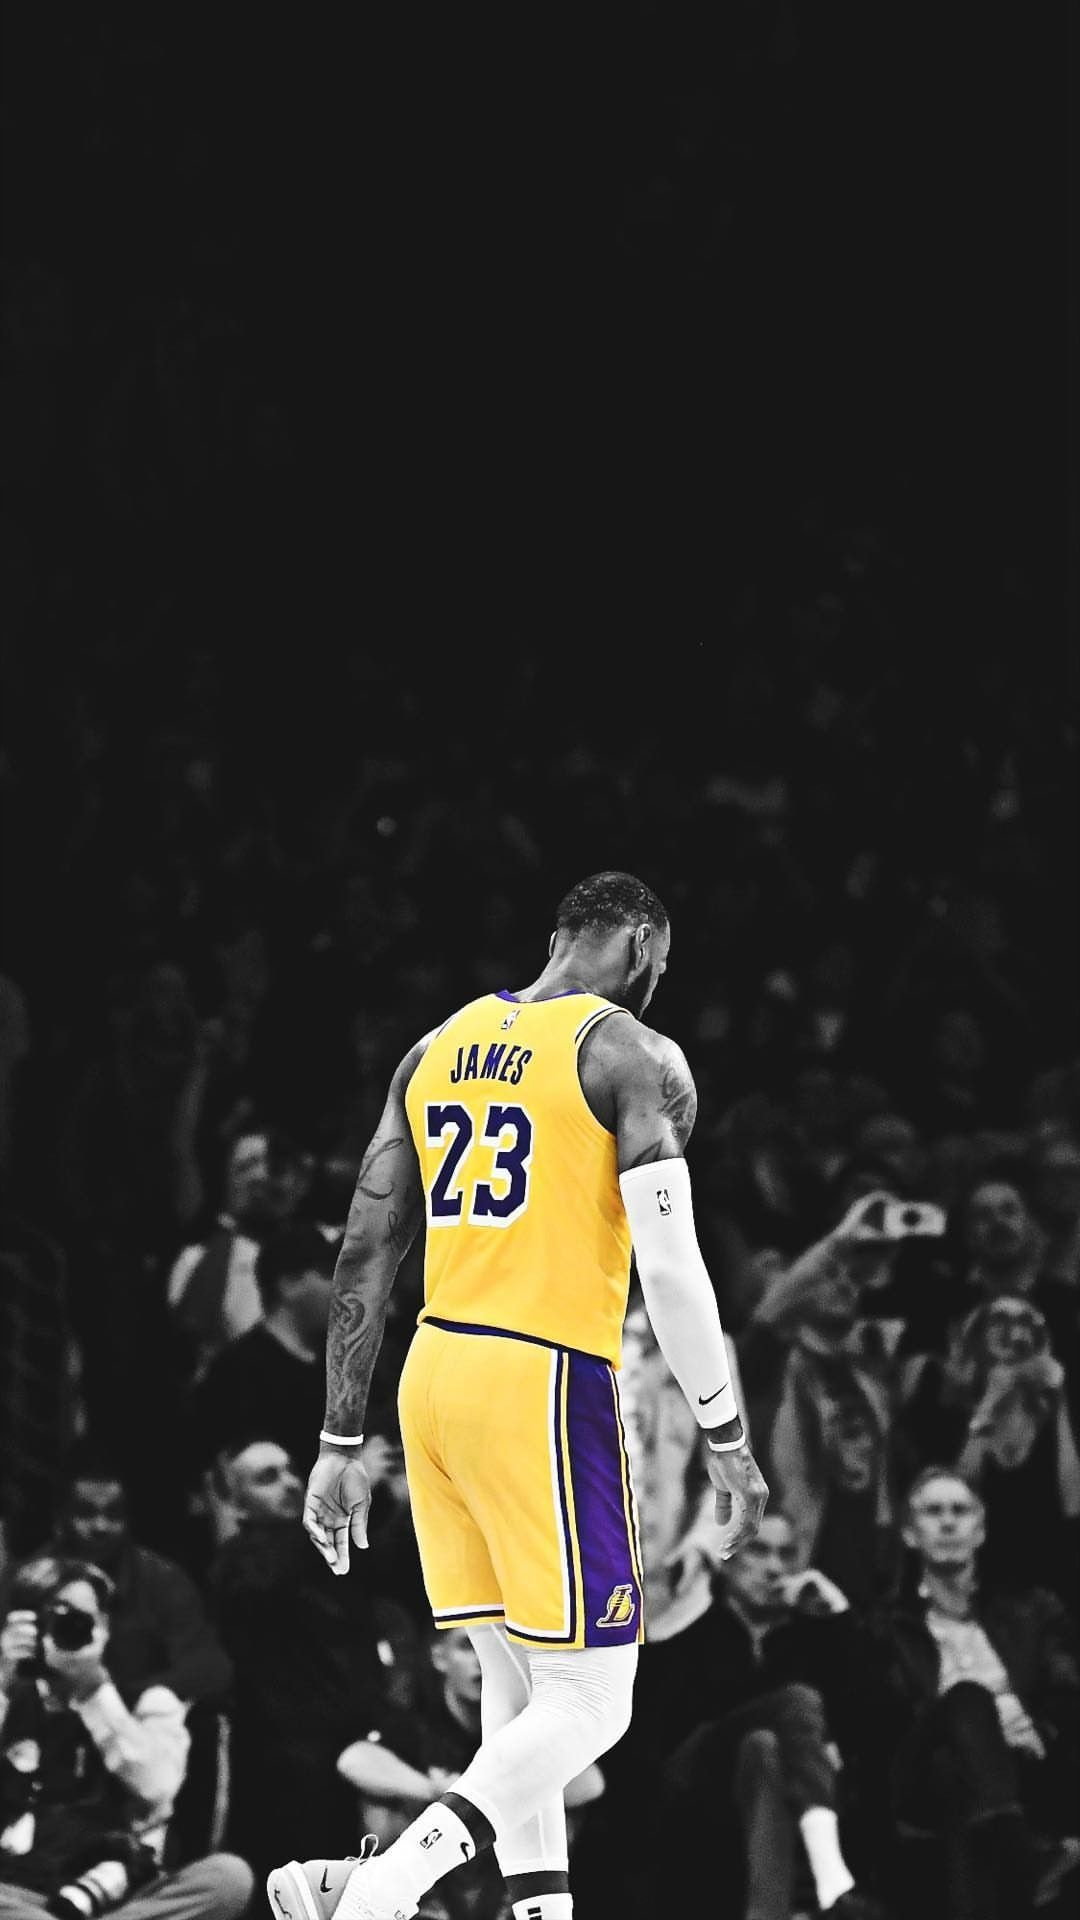 Lebron James Wallpaper Basketball Lebron James Lakers, Lebron